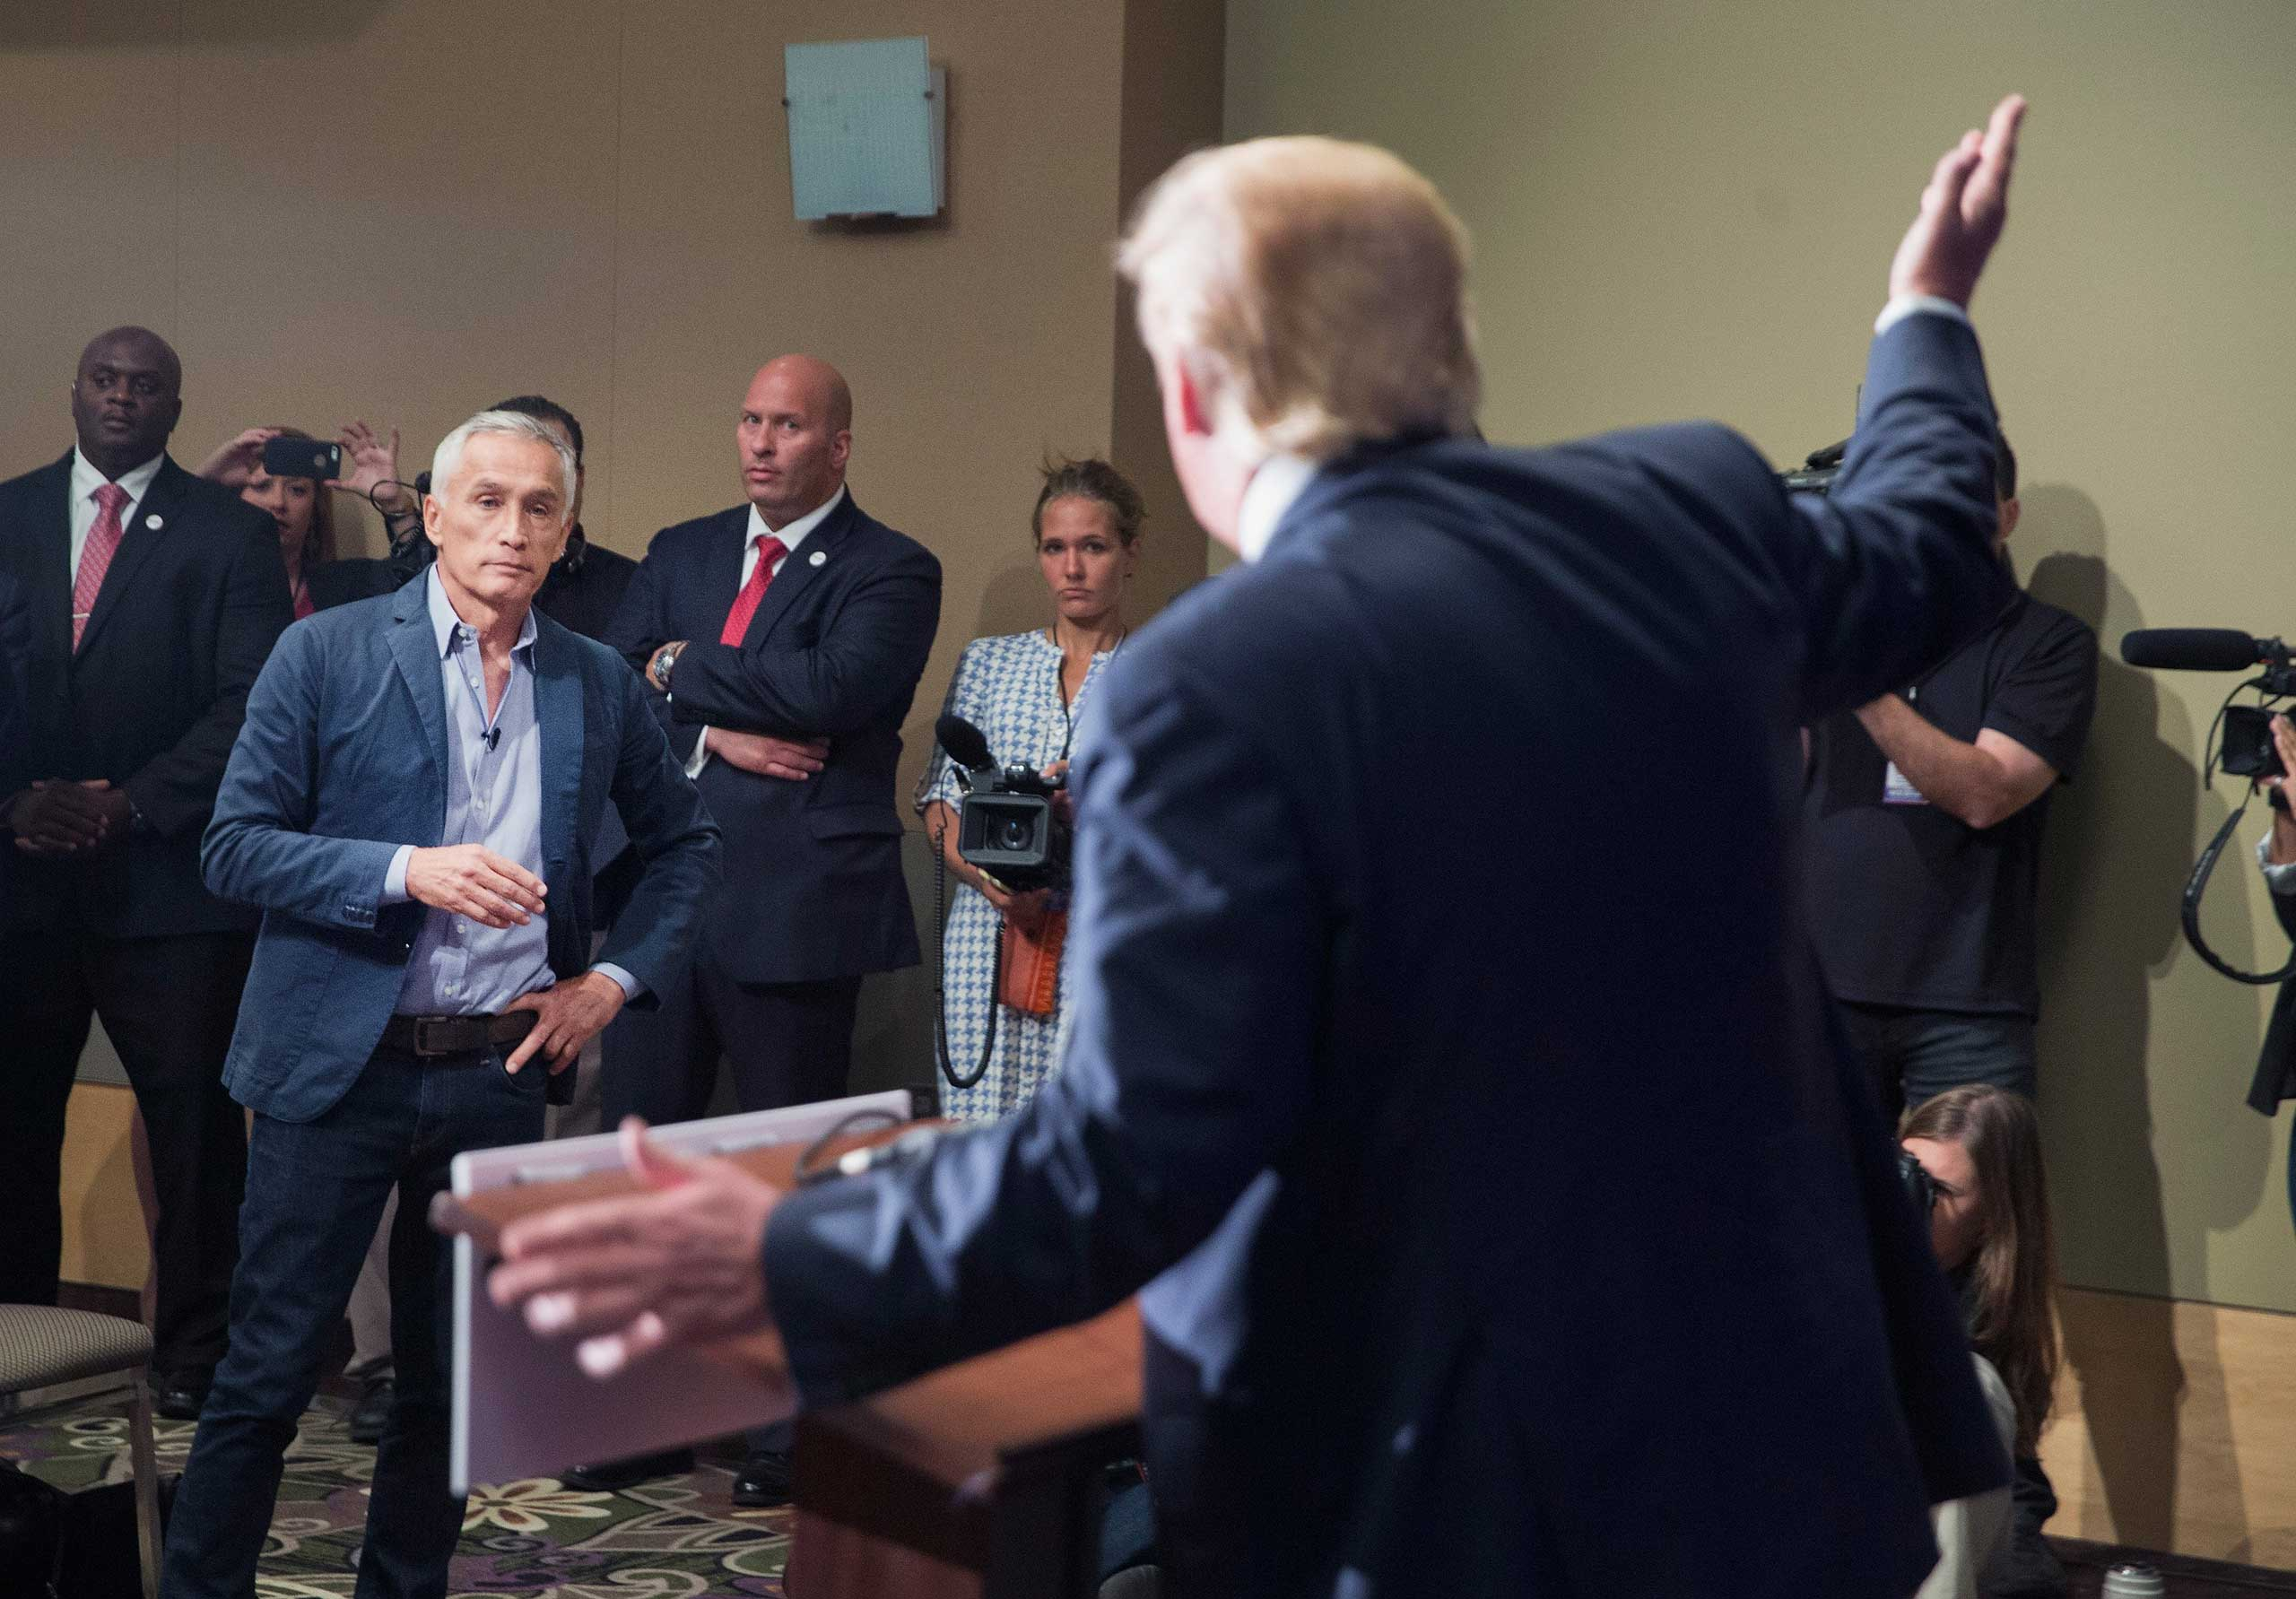 Republican presidential candidate Donald Trump fields a question from Univision and Fusion anchor Jorge Ramos during a press conference held before his campaign event at the Grand River Center in Dubuque, Iowa, on Aug. 25, 2015.